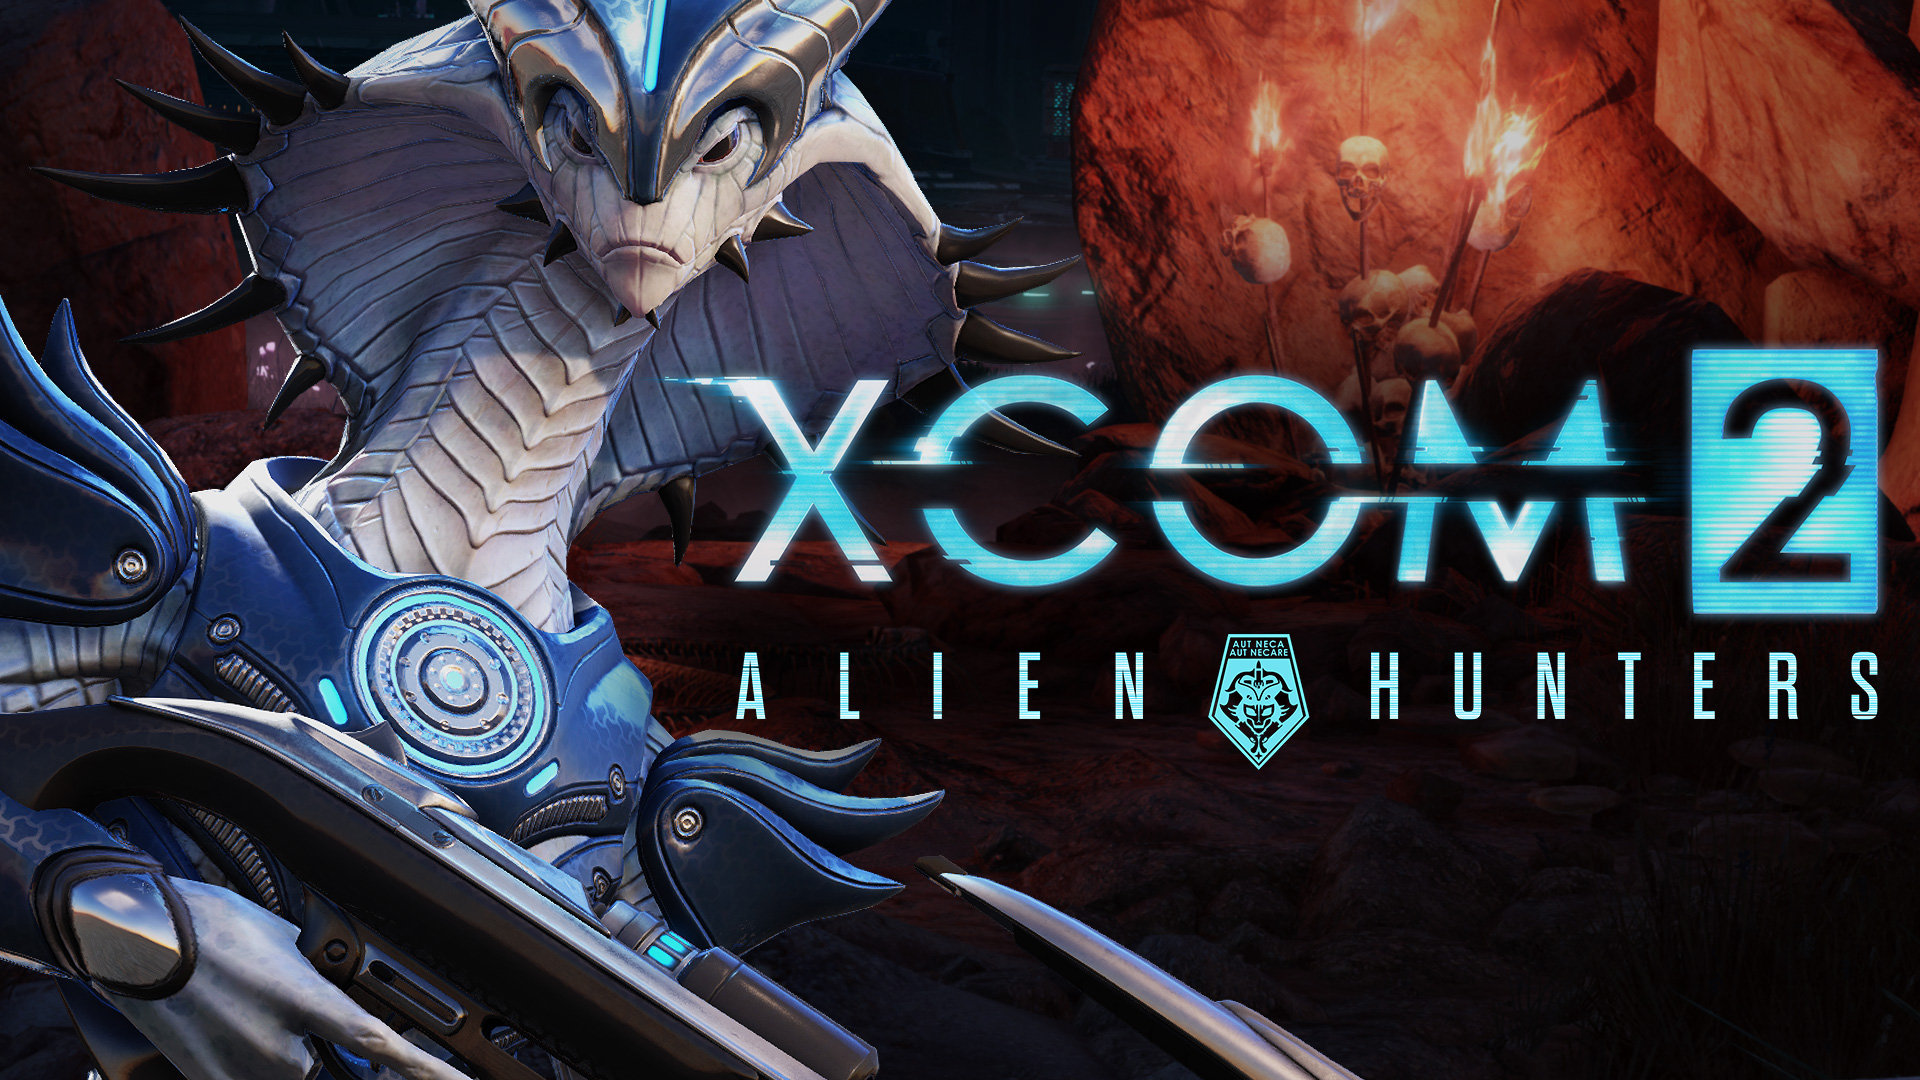 PT - Dangerous Ruler Aliens Await in XCOM 2's Alien Hunters DL